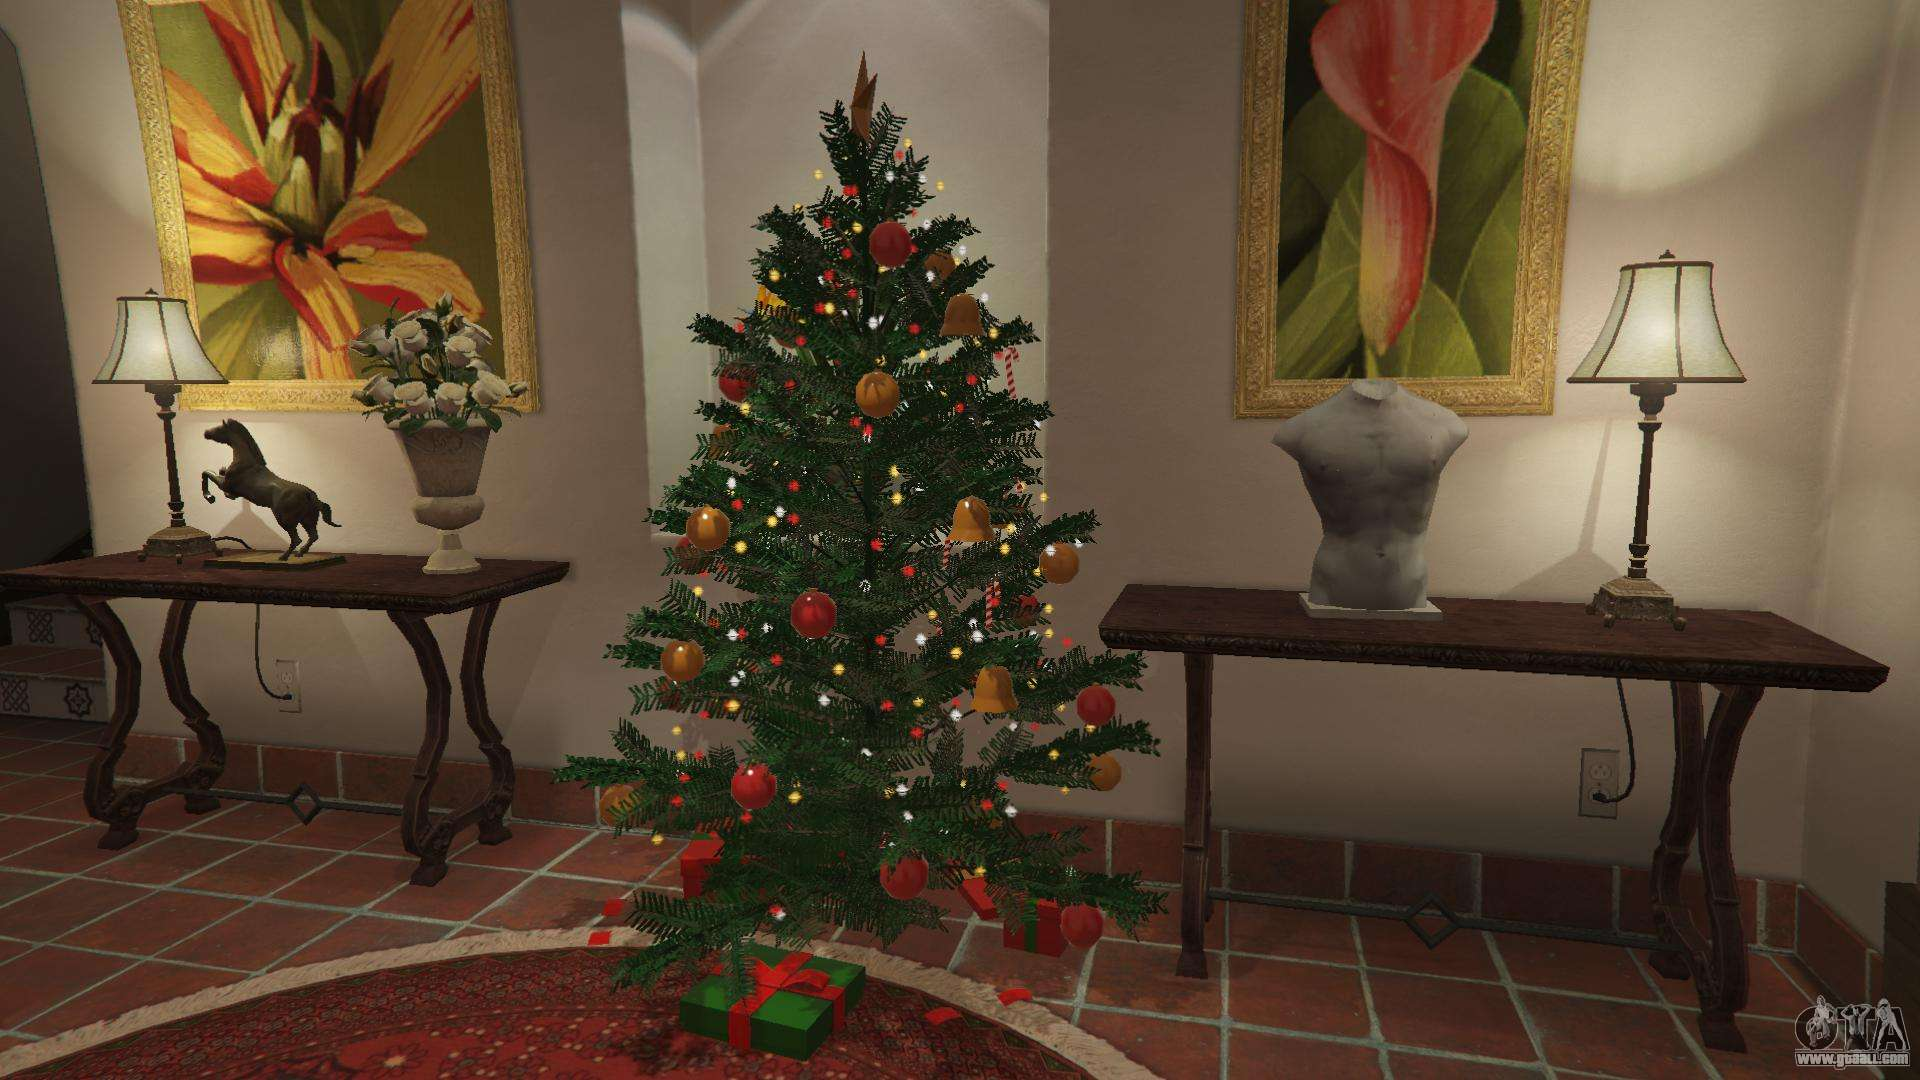 gta 5 christmas decorations for michaels house sixth screenshot - Michaels Christmas Decorations 2015